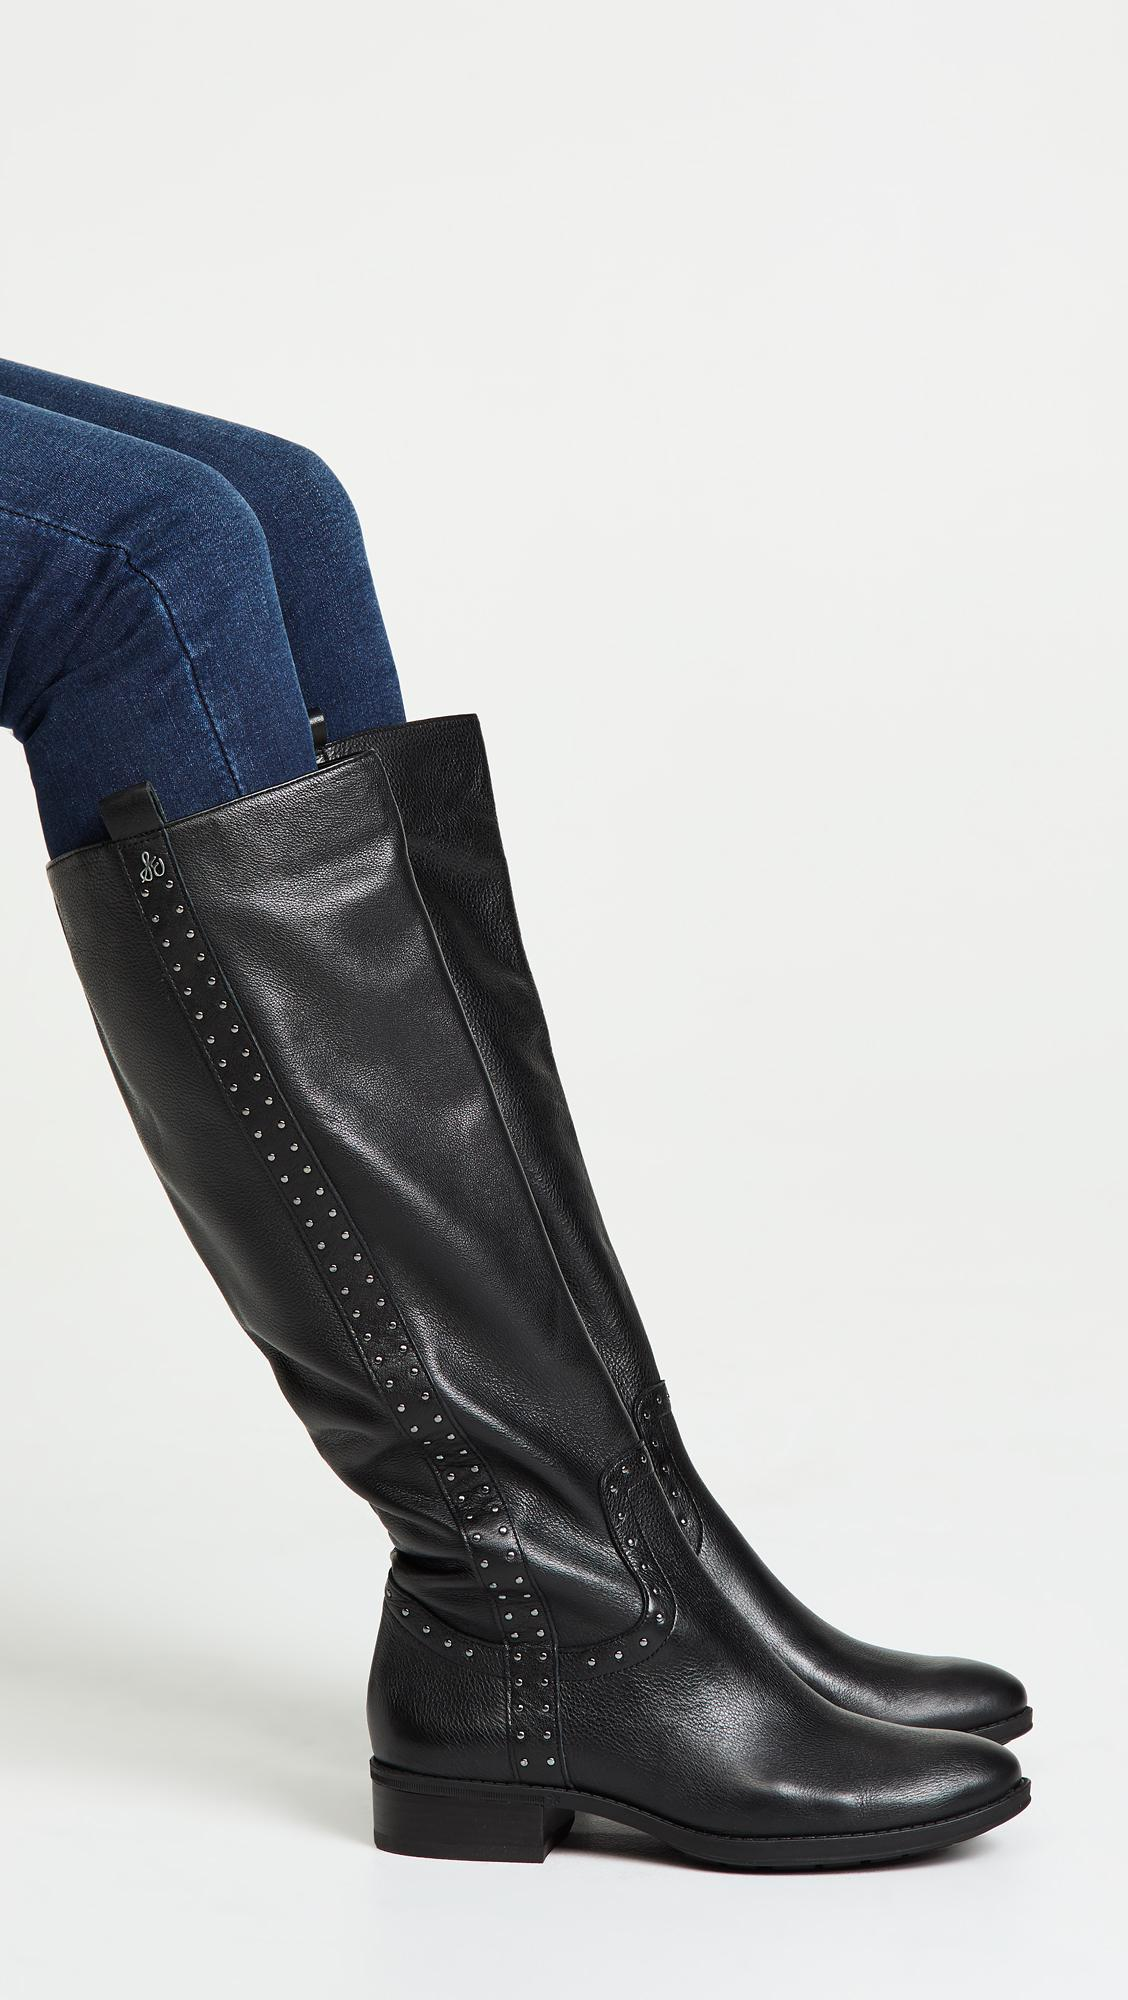 Sam Edelman Leather Prina Tall Boots in